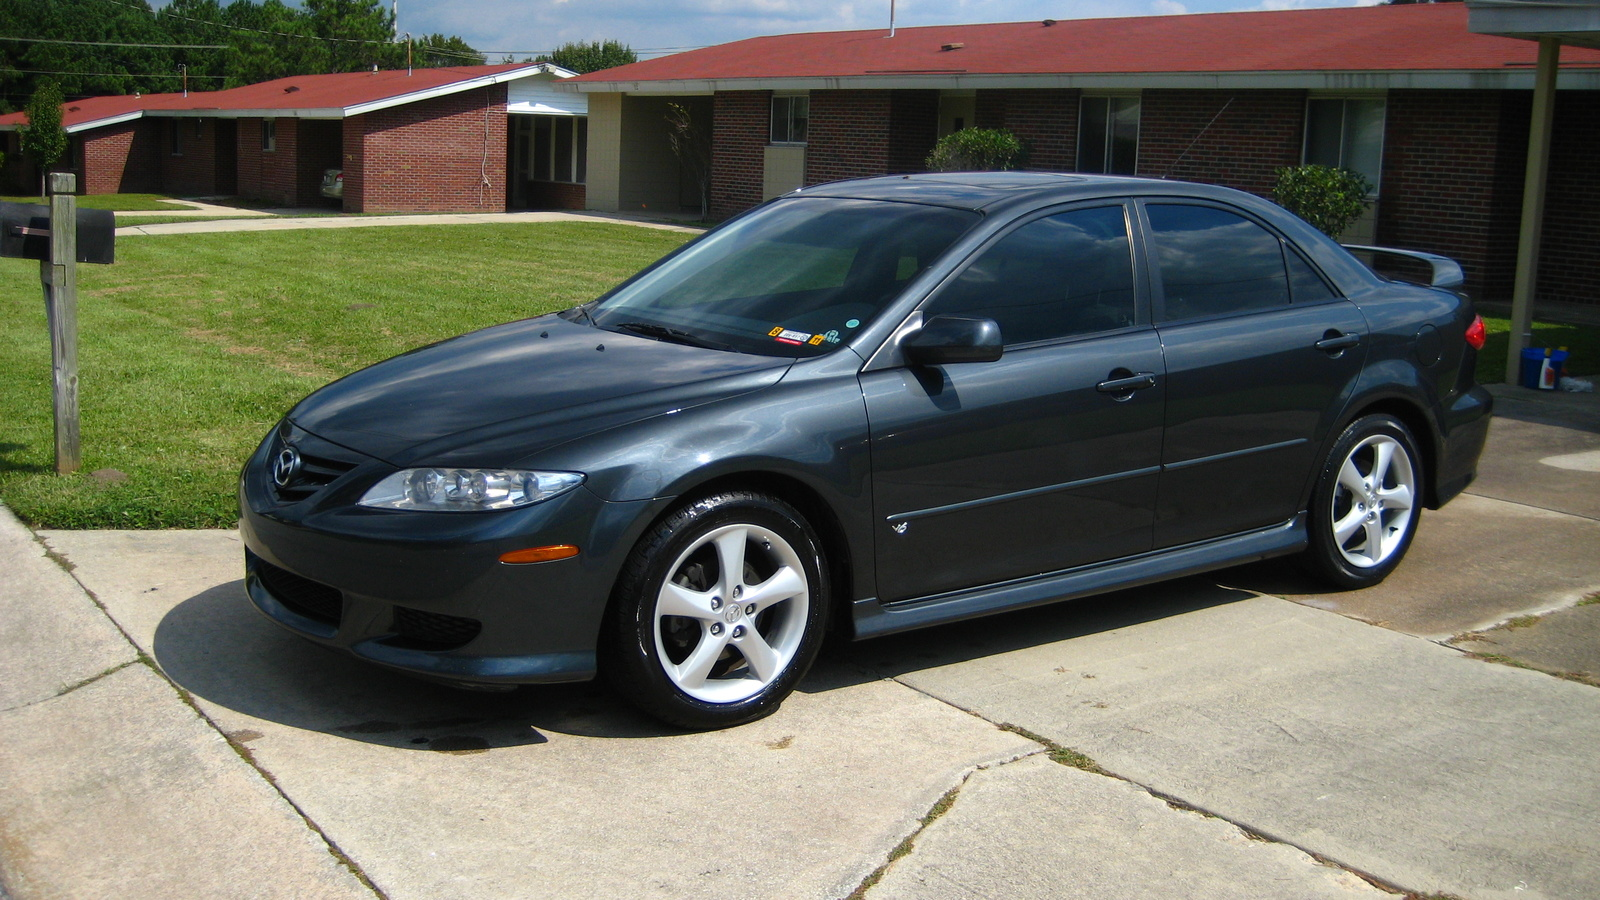 2004 mazda mazda6 photos informations articles. Black Bedroom Furniture Sets. Home Design Ideas